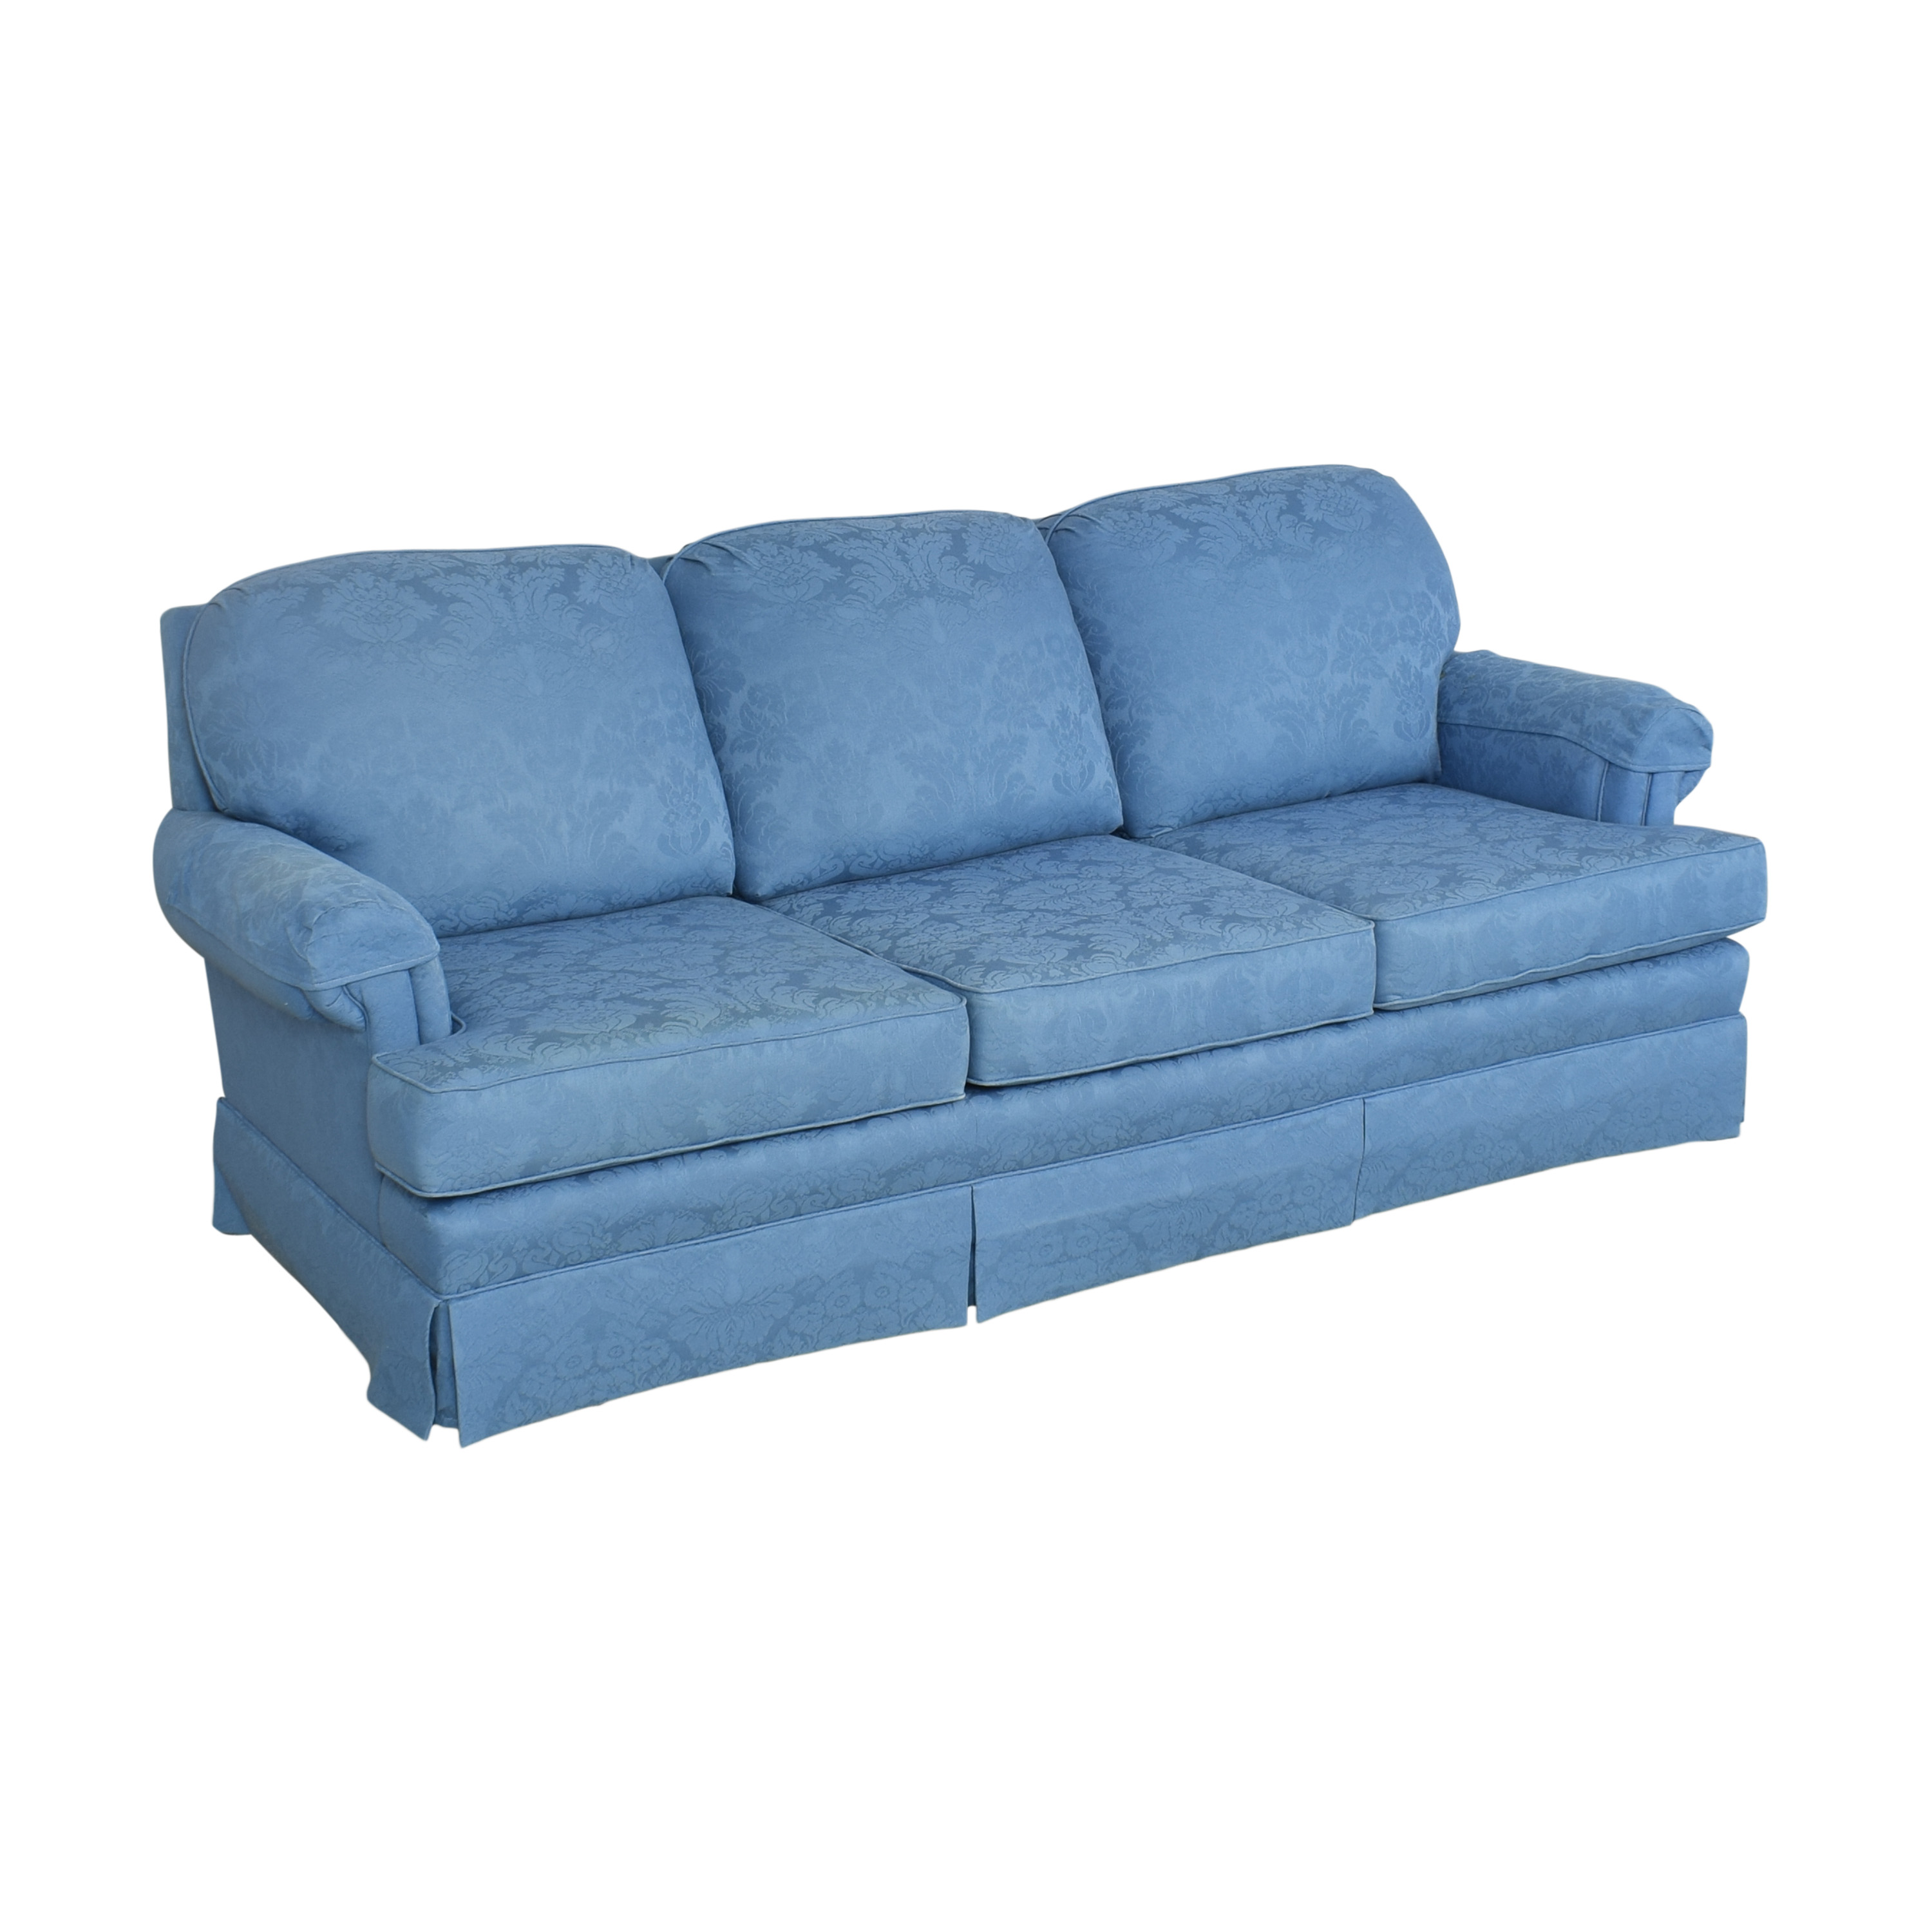 Norwalk Furniture Norwalk Three Cushion Sofa pa